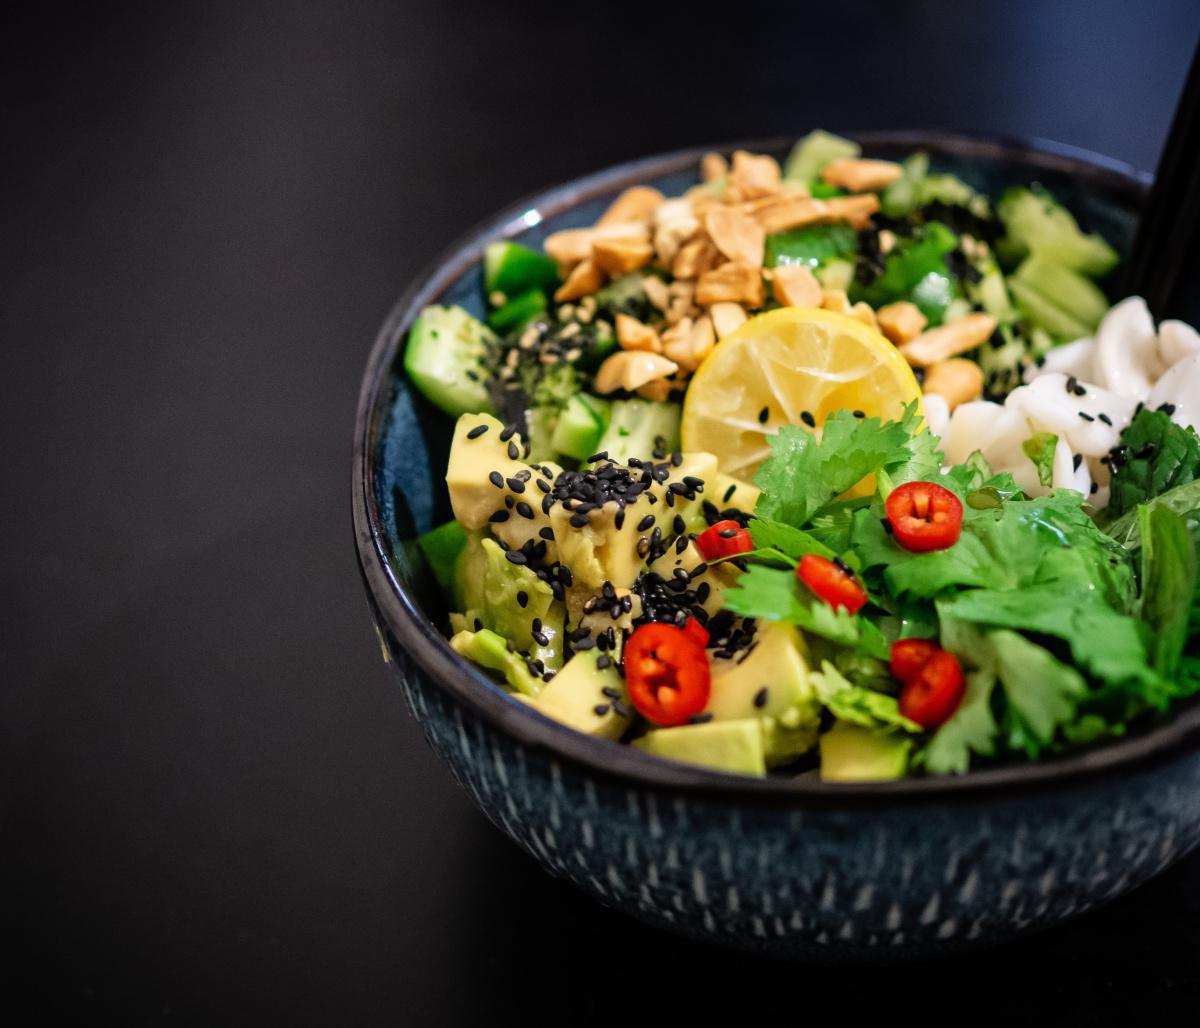 Large salad of raw vegetables